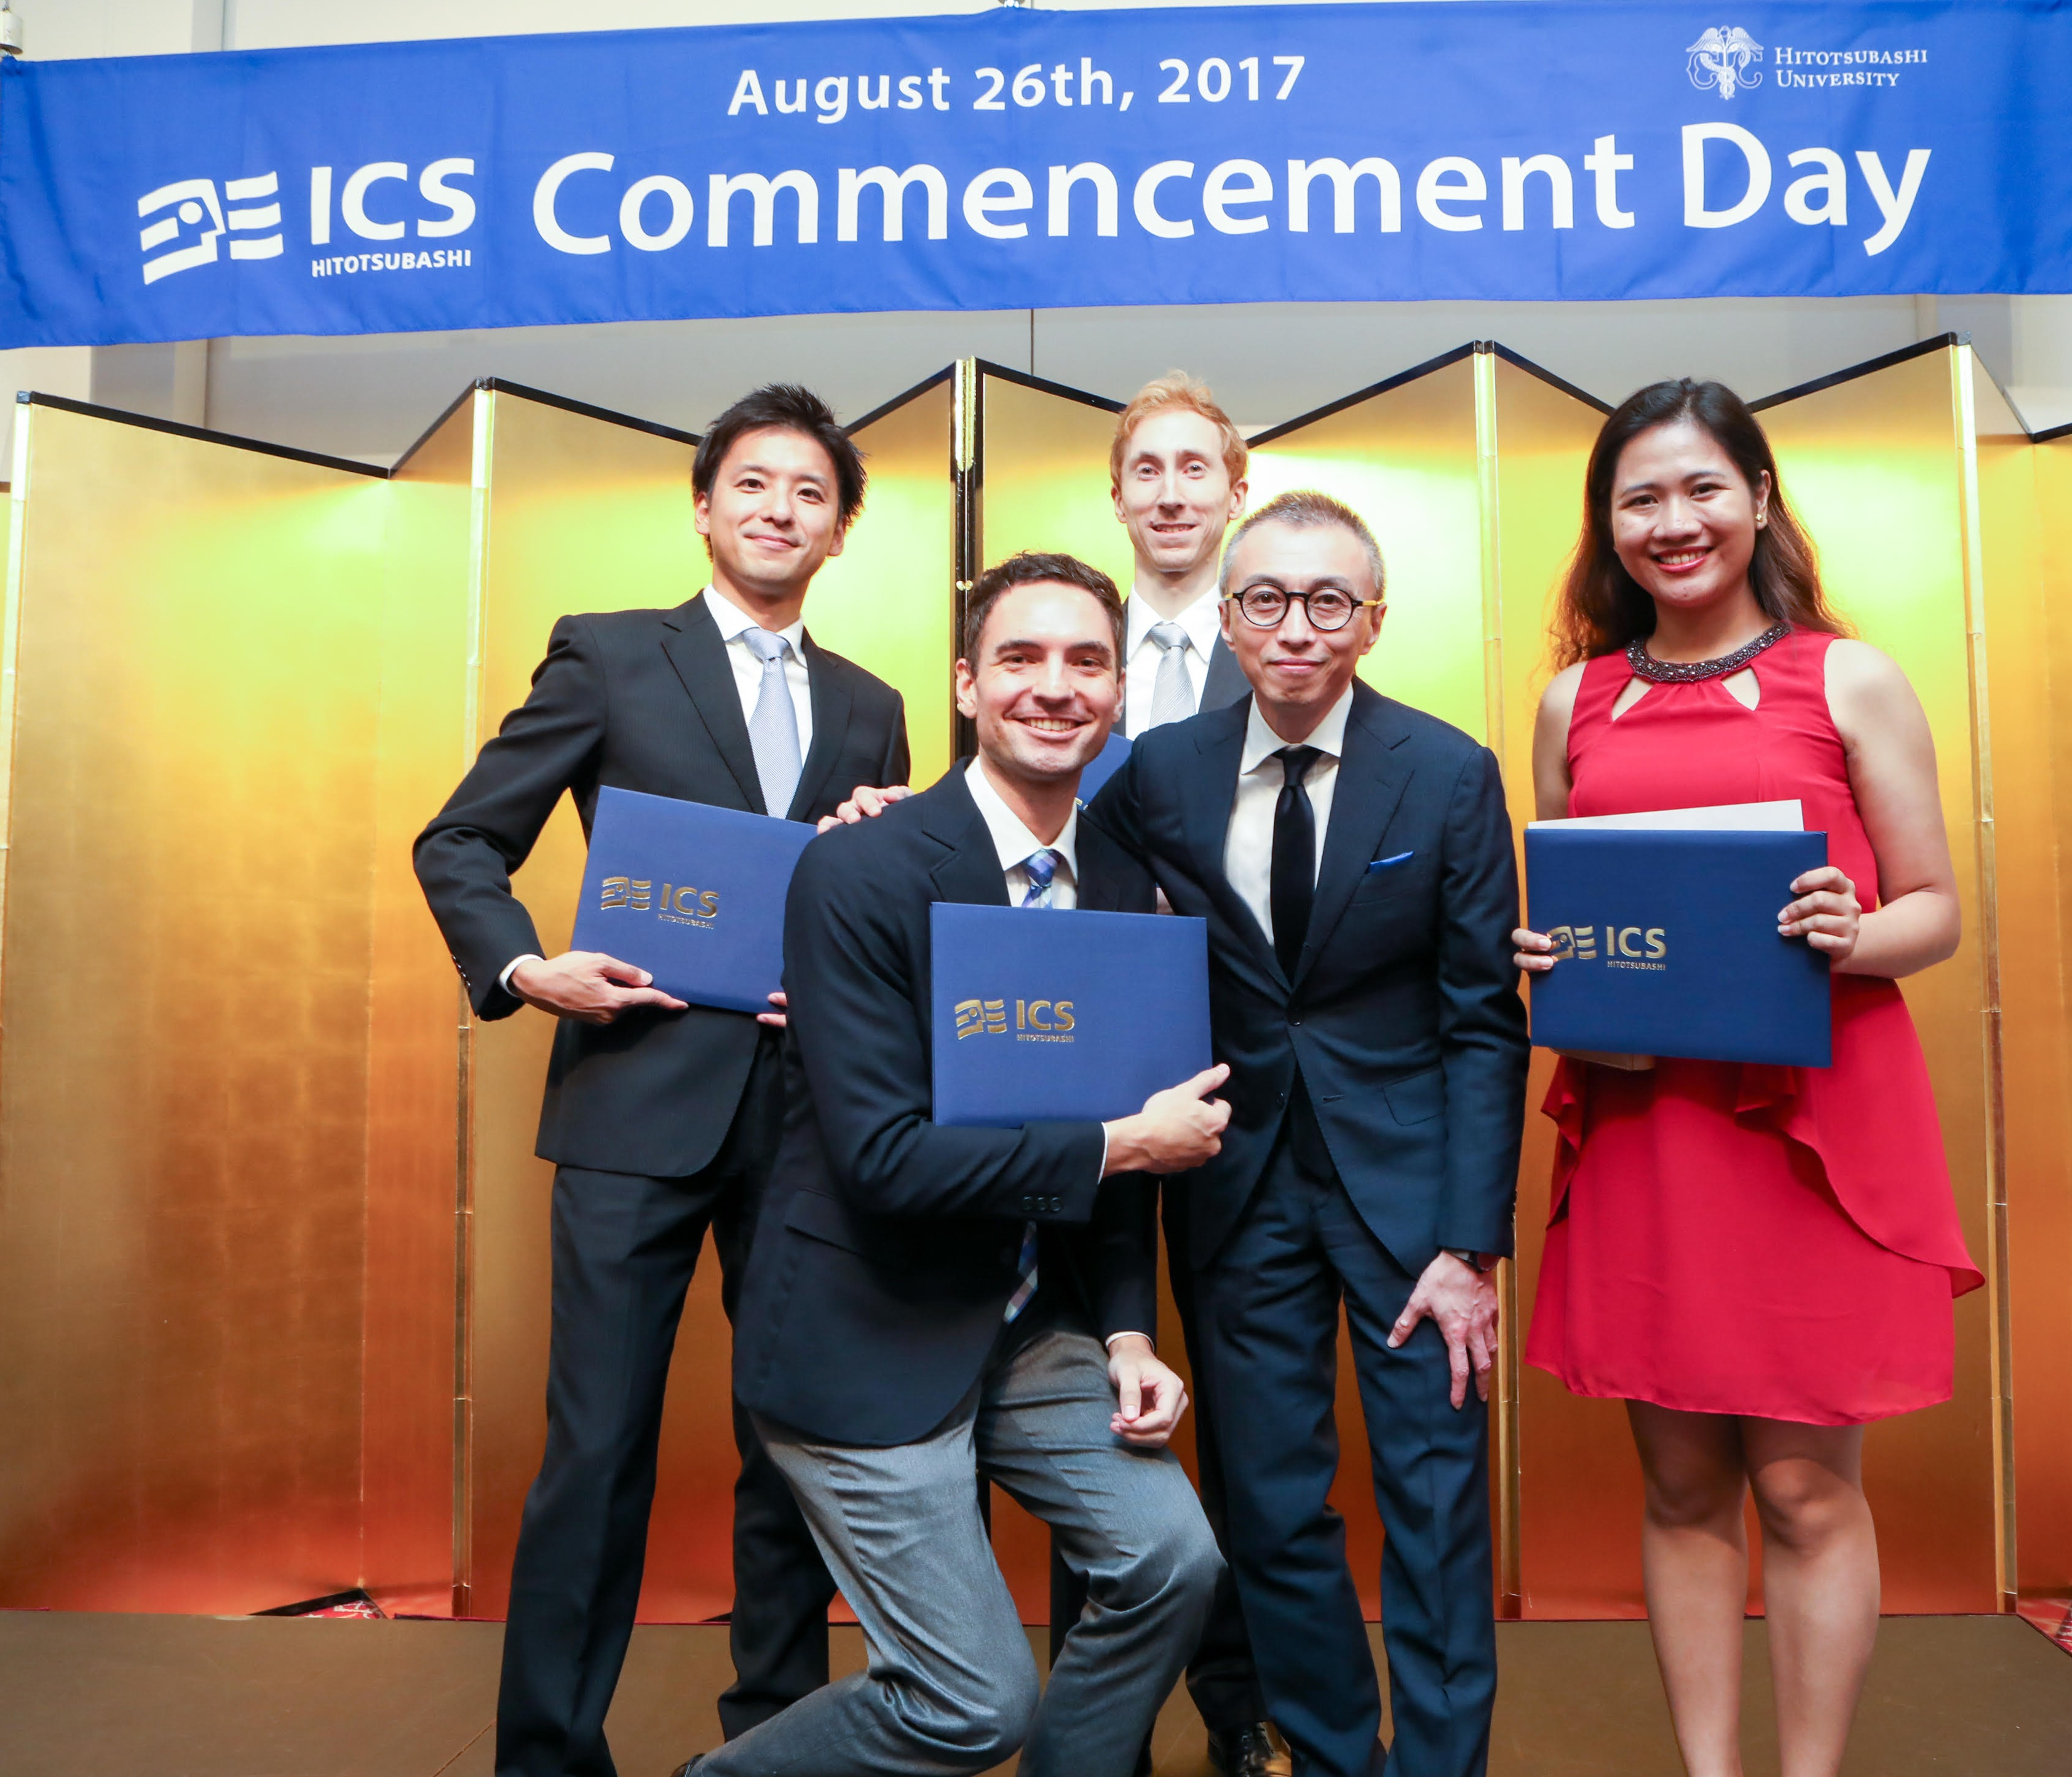 Lena_CommencementDay